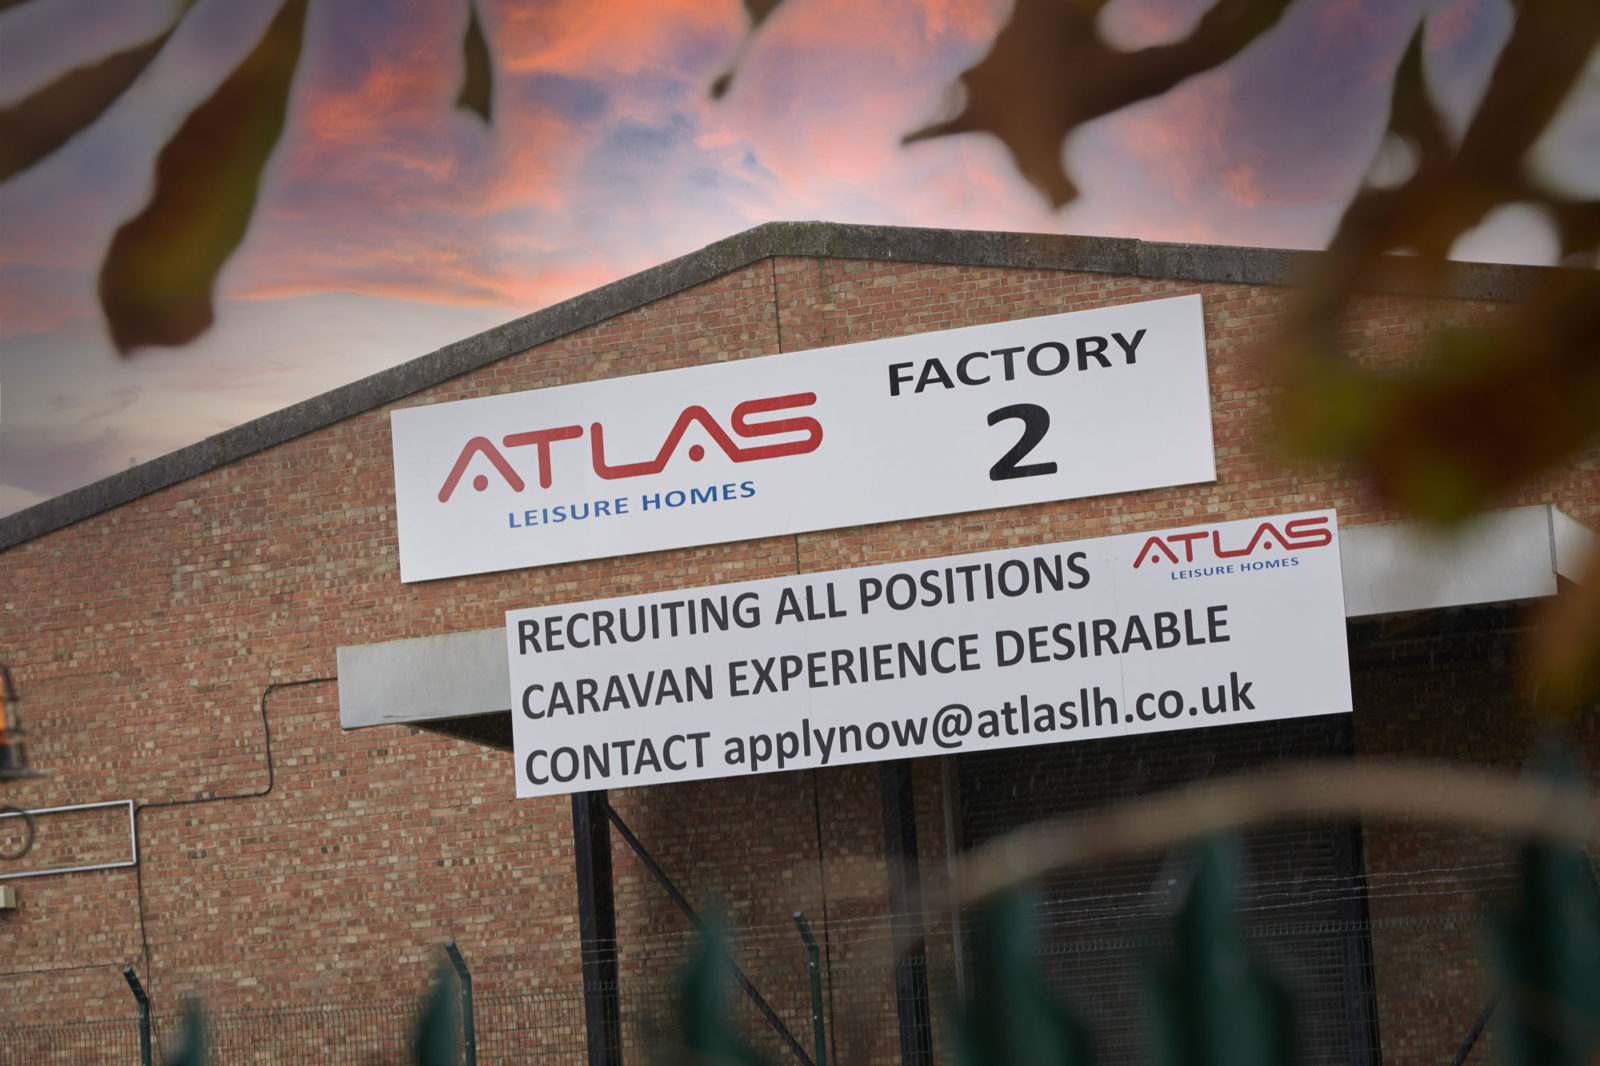 Atlas Lesiure Homes Sutton Fields Hull factory